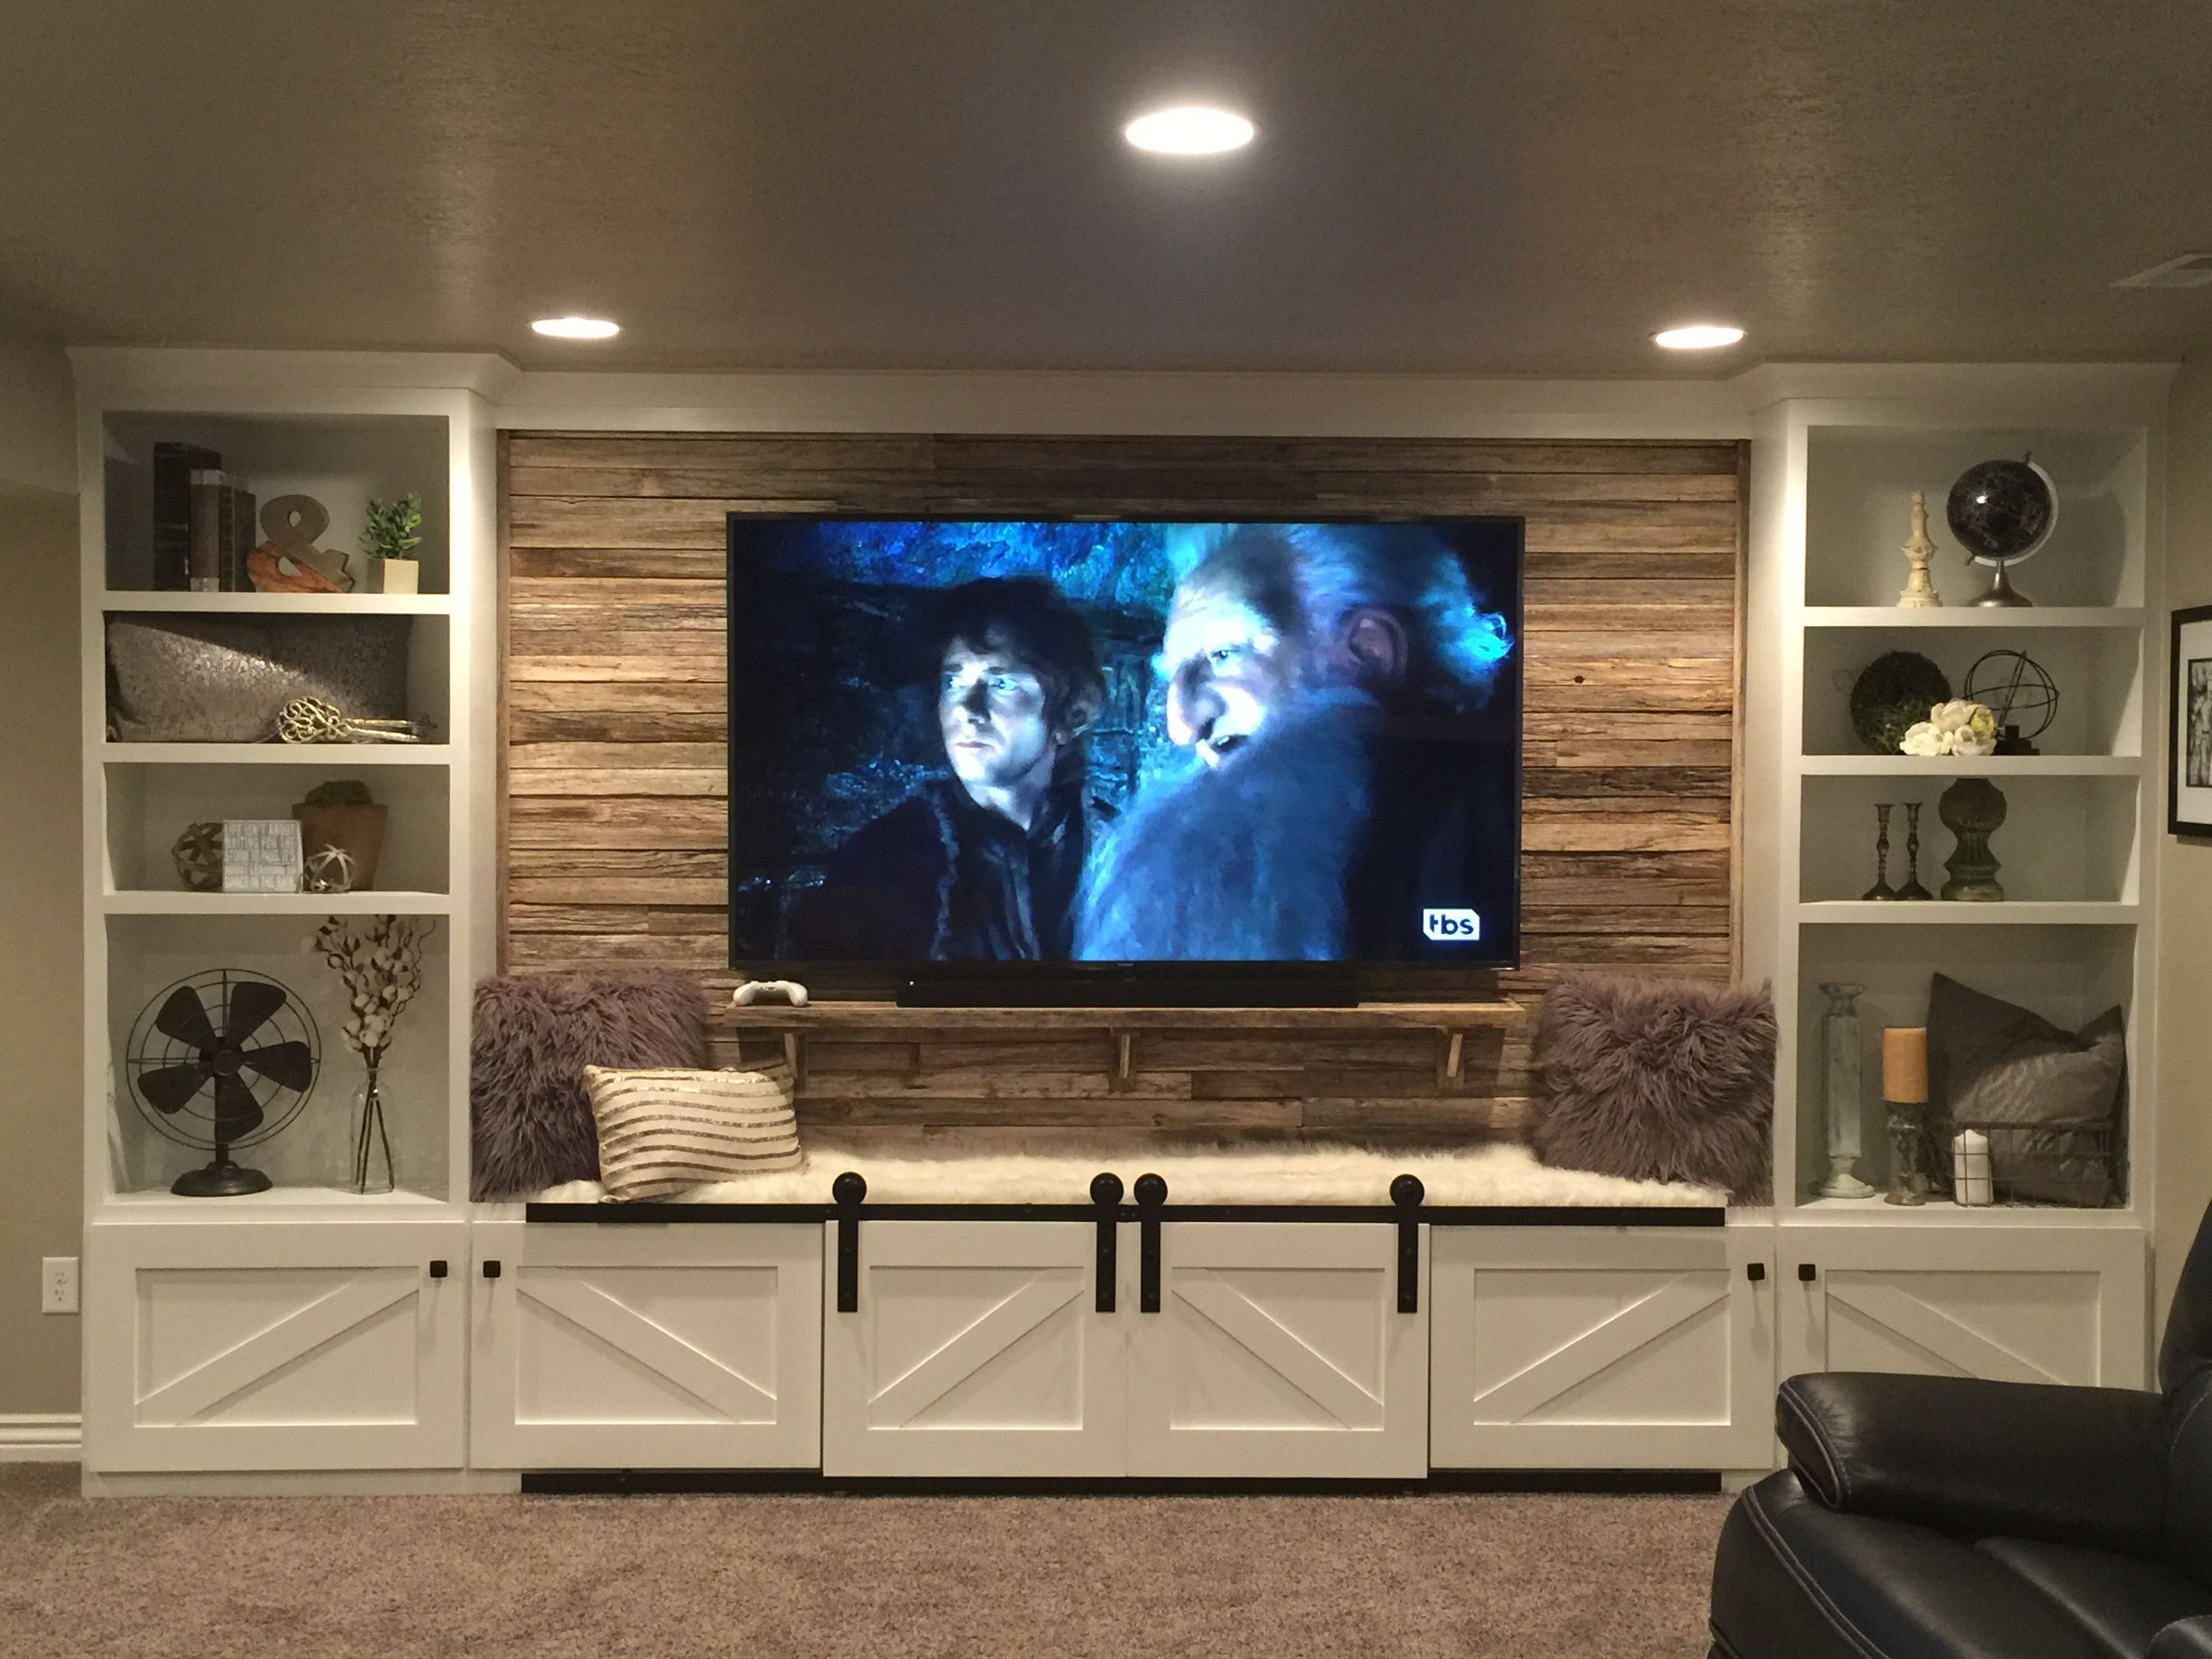 Best 17 Diy Entertainment Center Ideas And Designs For Your New 400 x 300